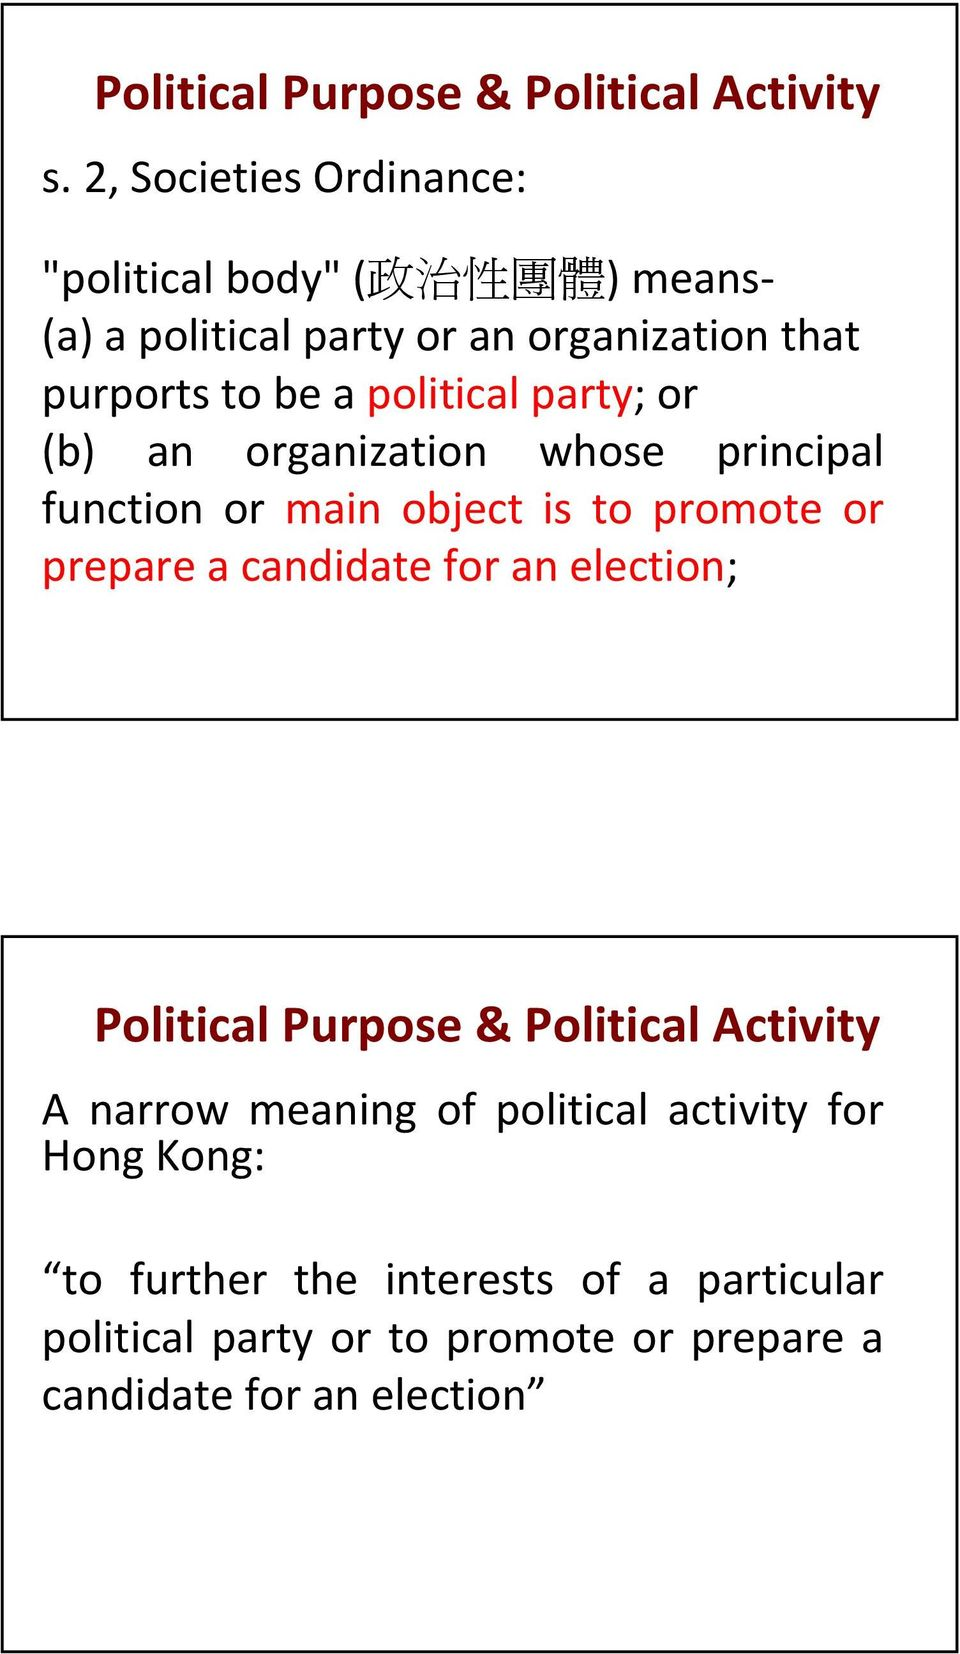 political party; or (b) an organization whose principal function or main object is to promote or prepare a candidate for an